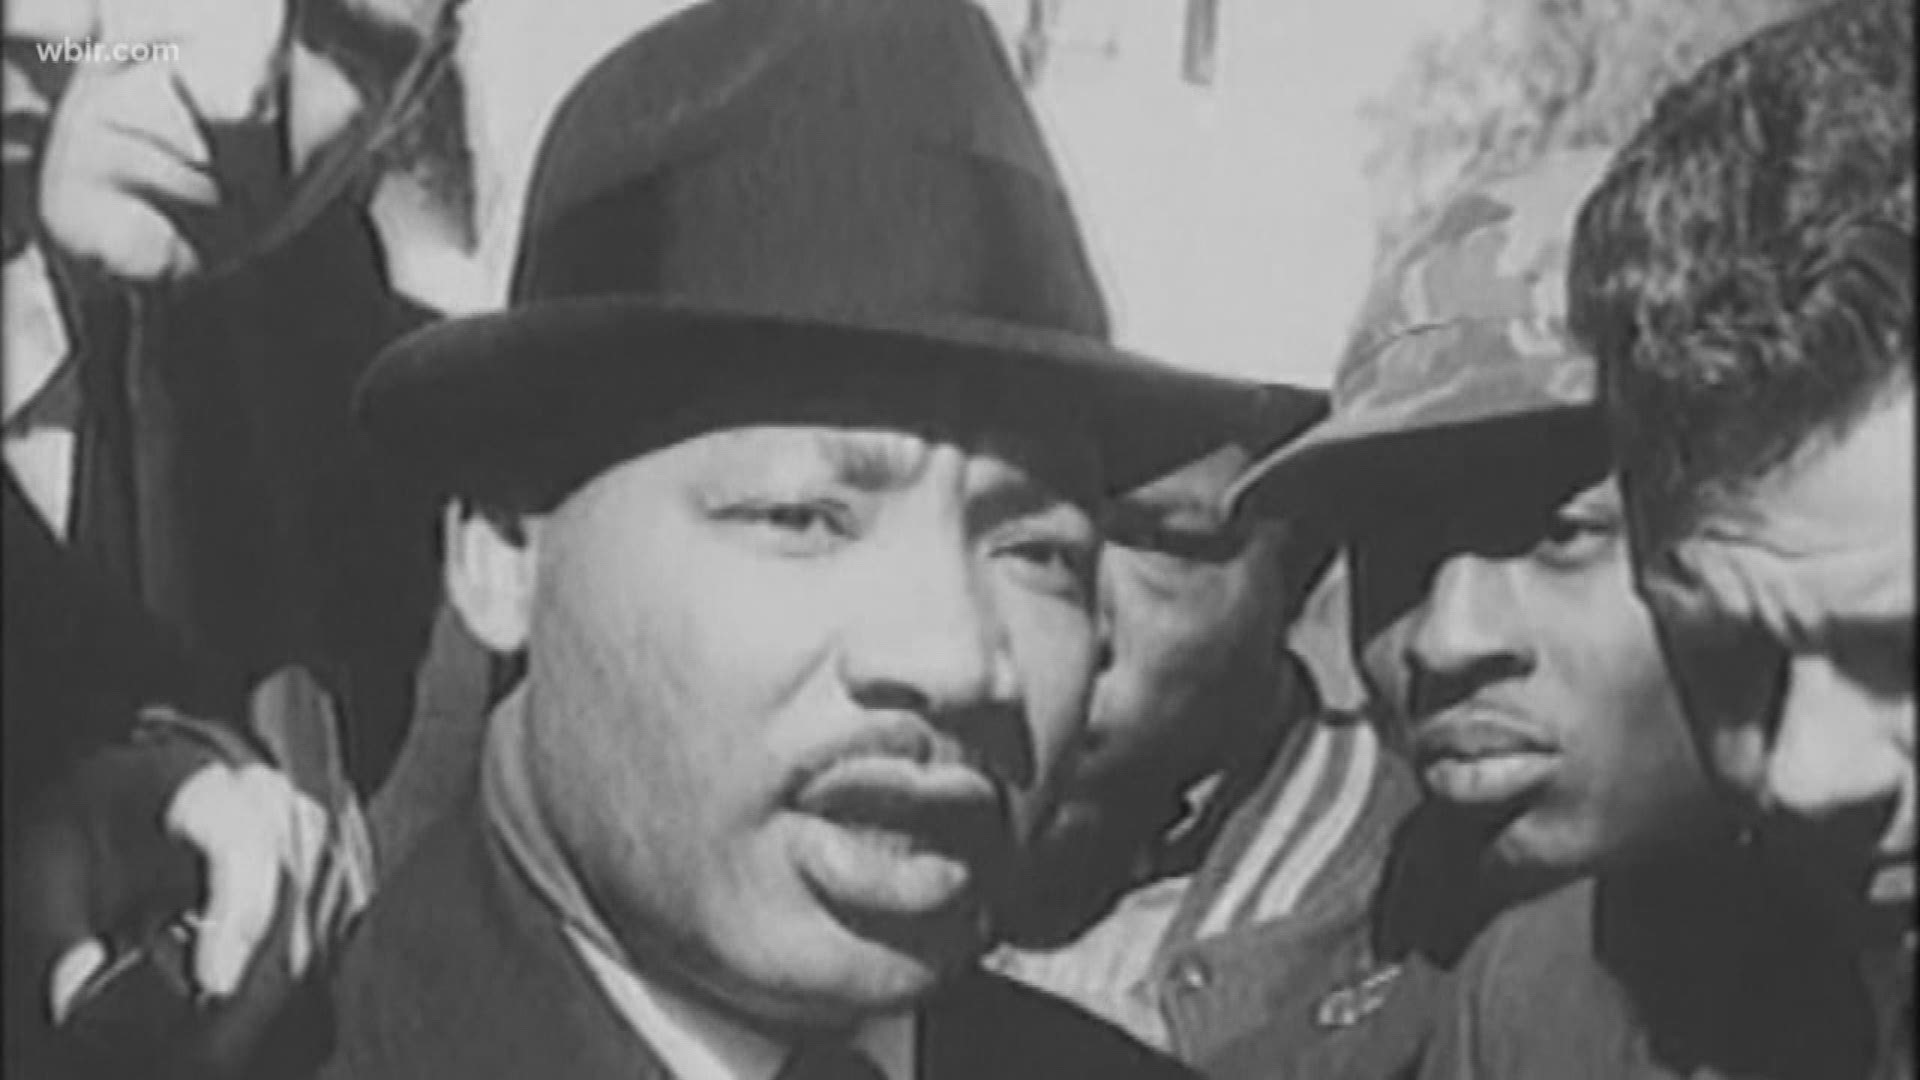 10 About Town Martin Luther King Jr Day Events And Celebrations In Knoxville Wbir Com